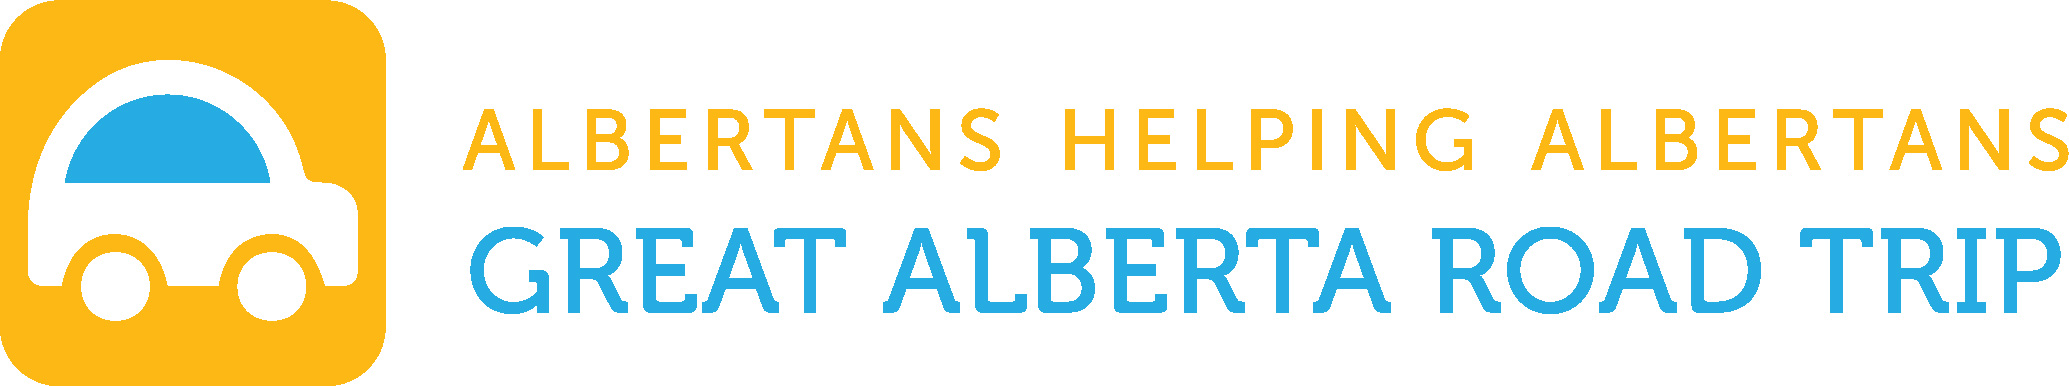 Albertans Helping Albertans - Great Alberta Road Trip